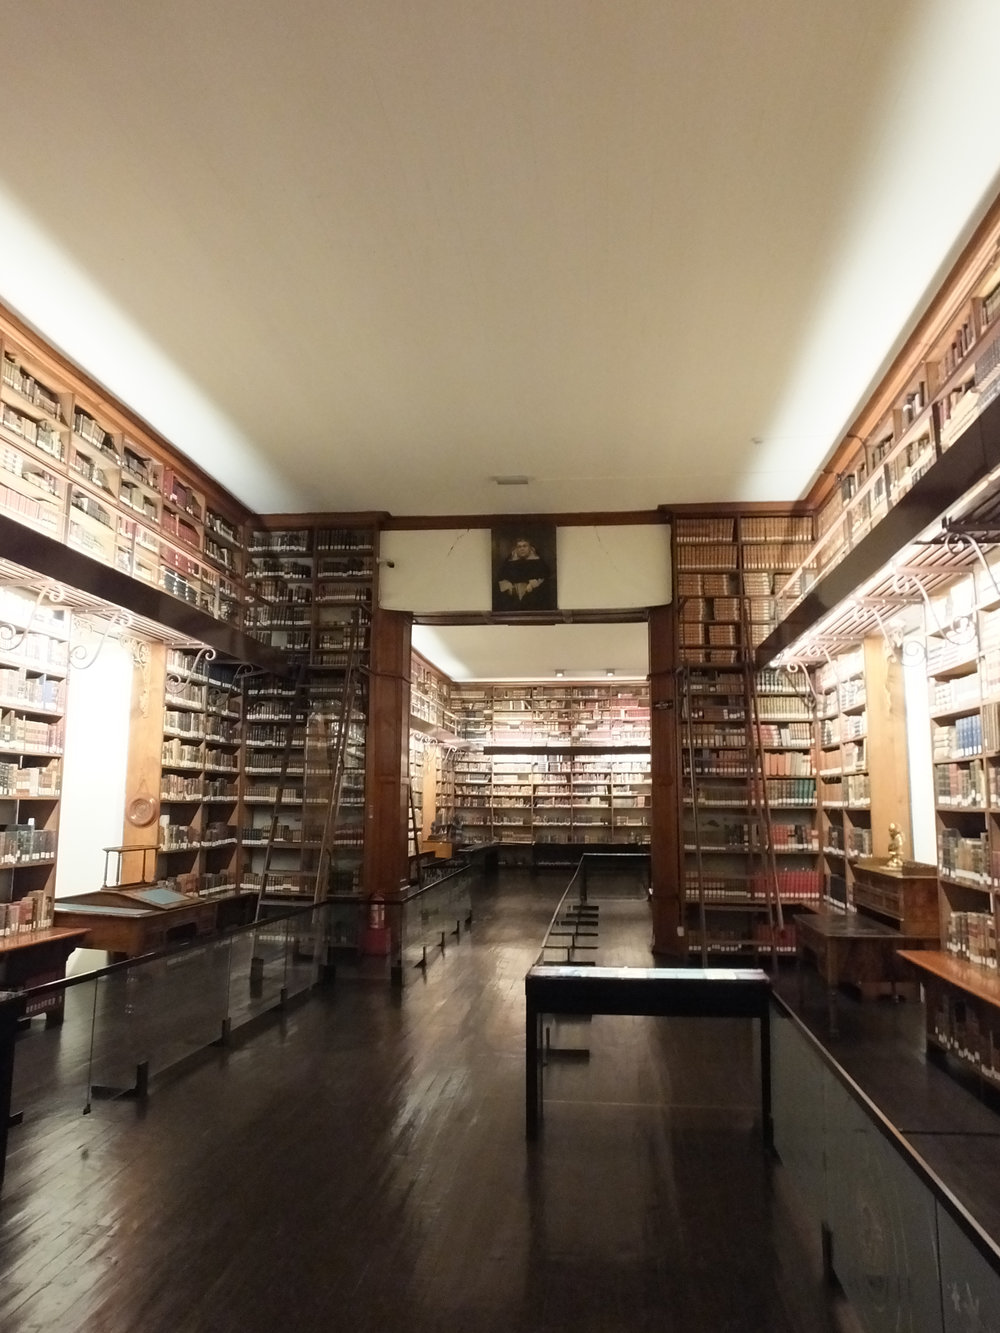 Recoleta Dominica Library. Photo courtesy Francisca Esponoza